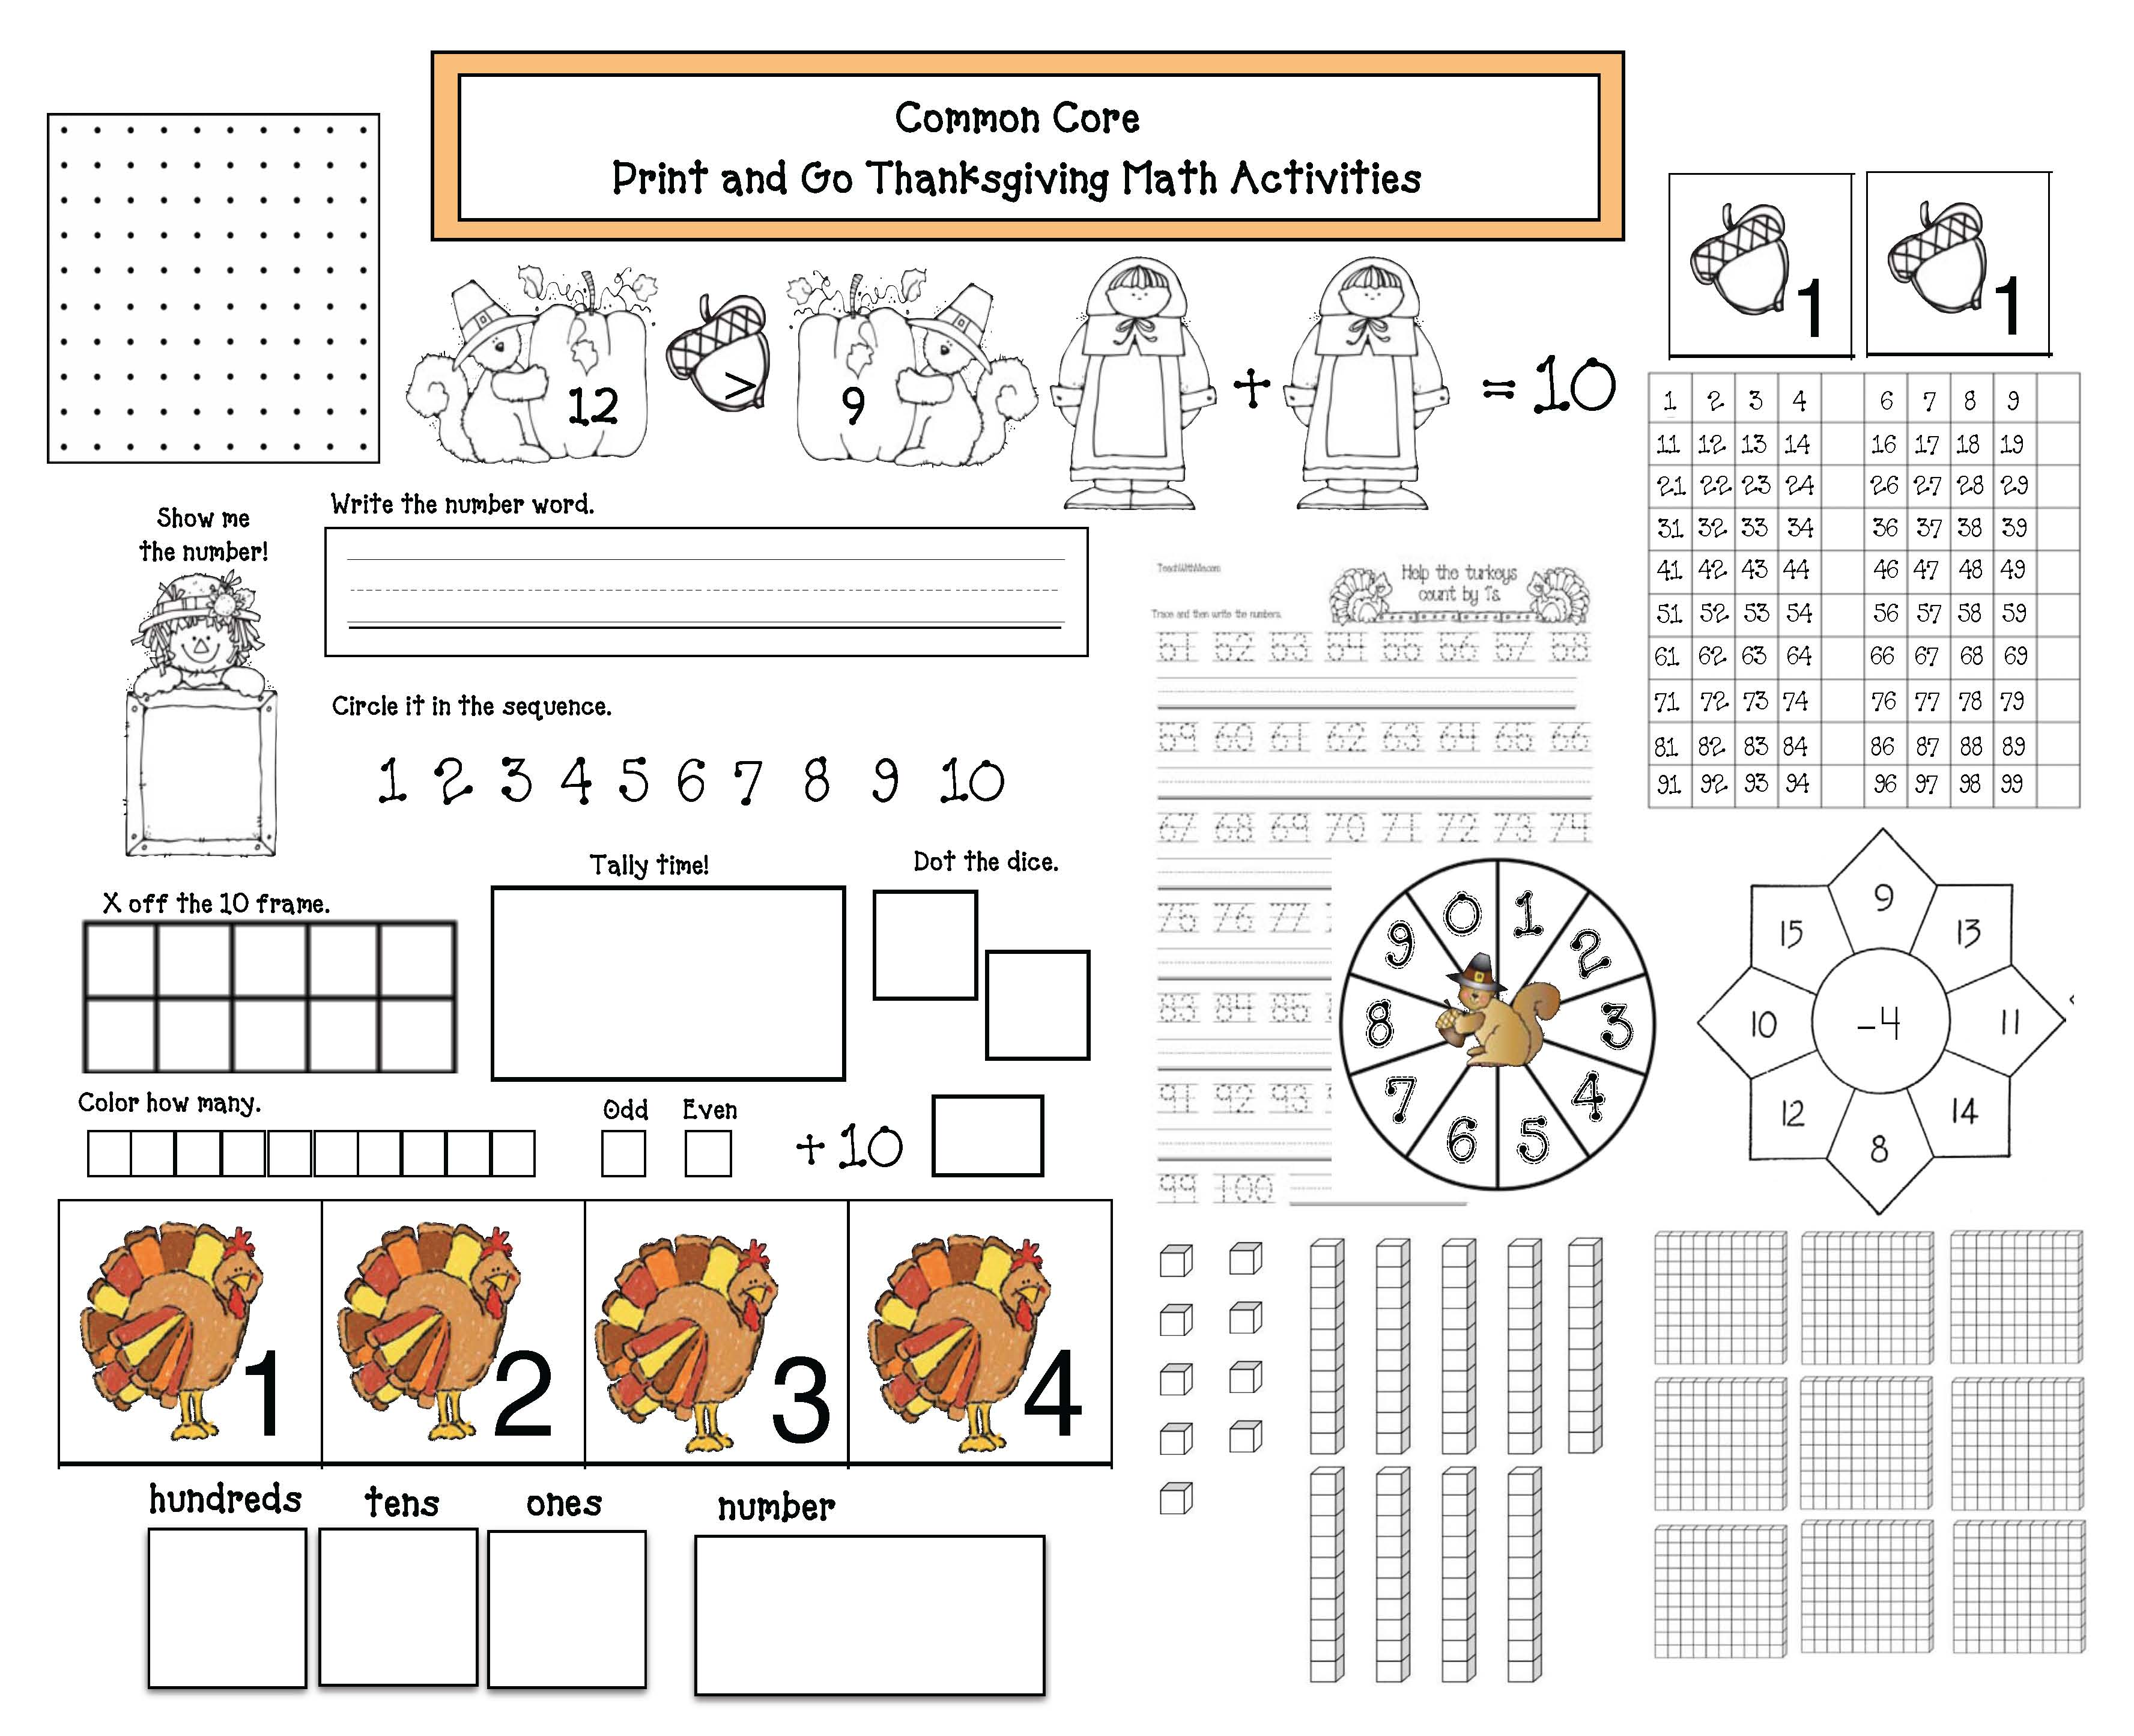 common core math kindergarten, common core math 1st grade, ordinal numbers, skip counting, odd and even, counting to 100, counting to 120, place value activities, fact family activities, Pilgrim activities, turkey activities, math games, 10 frames, thanksgiving math, november math worksheets, thanksgving games